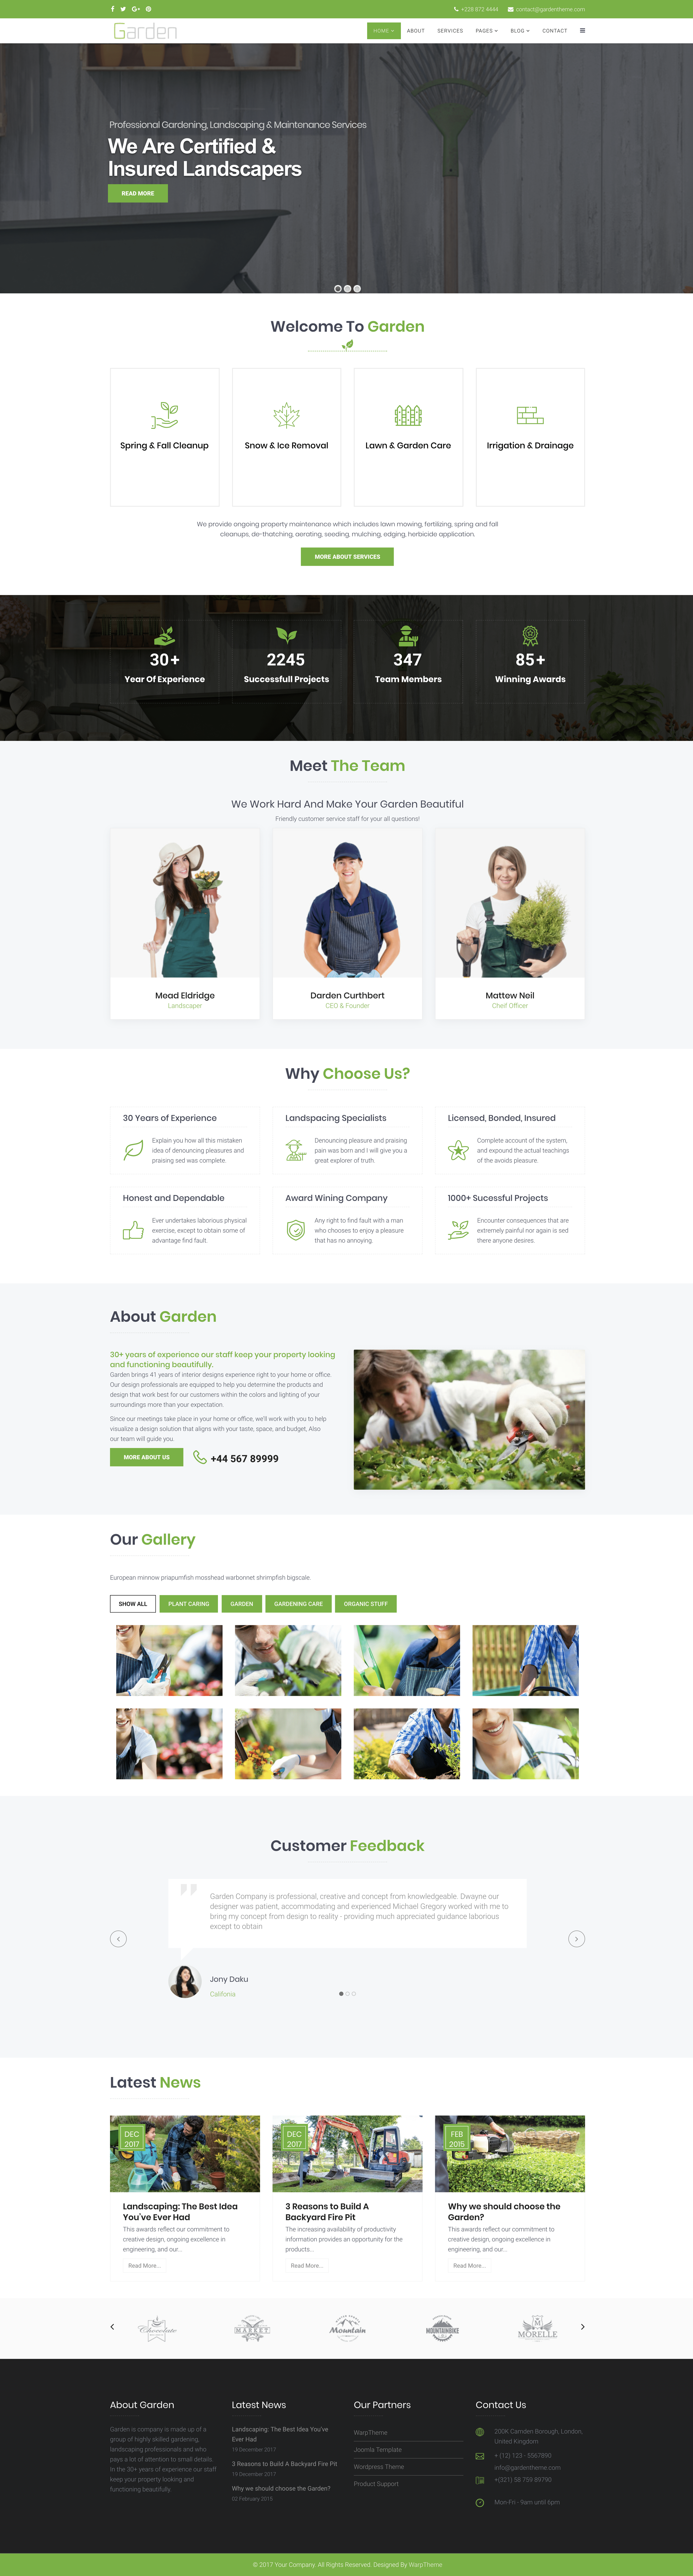 Lawn Services Business